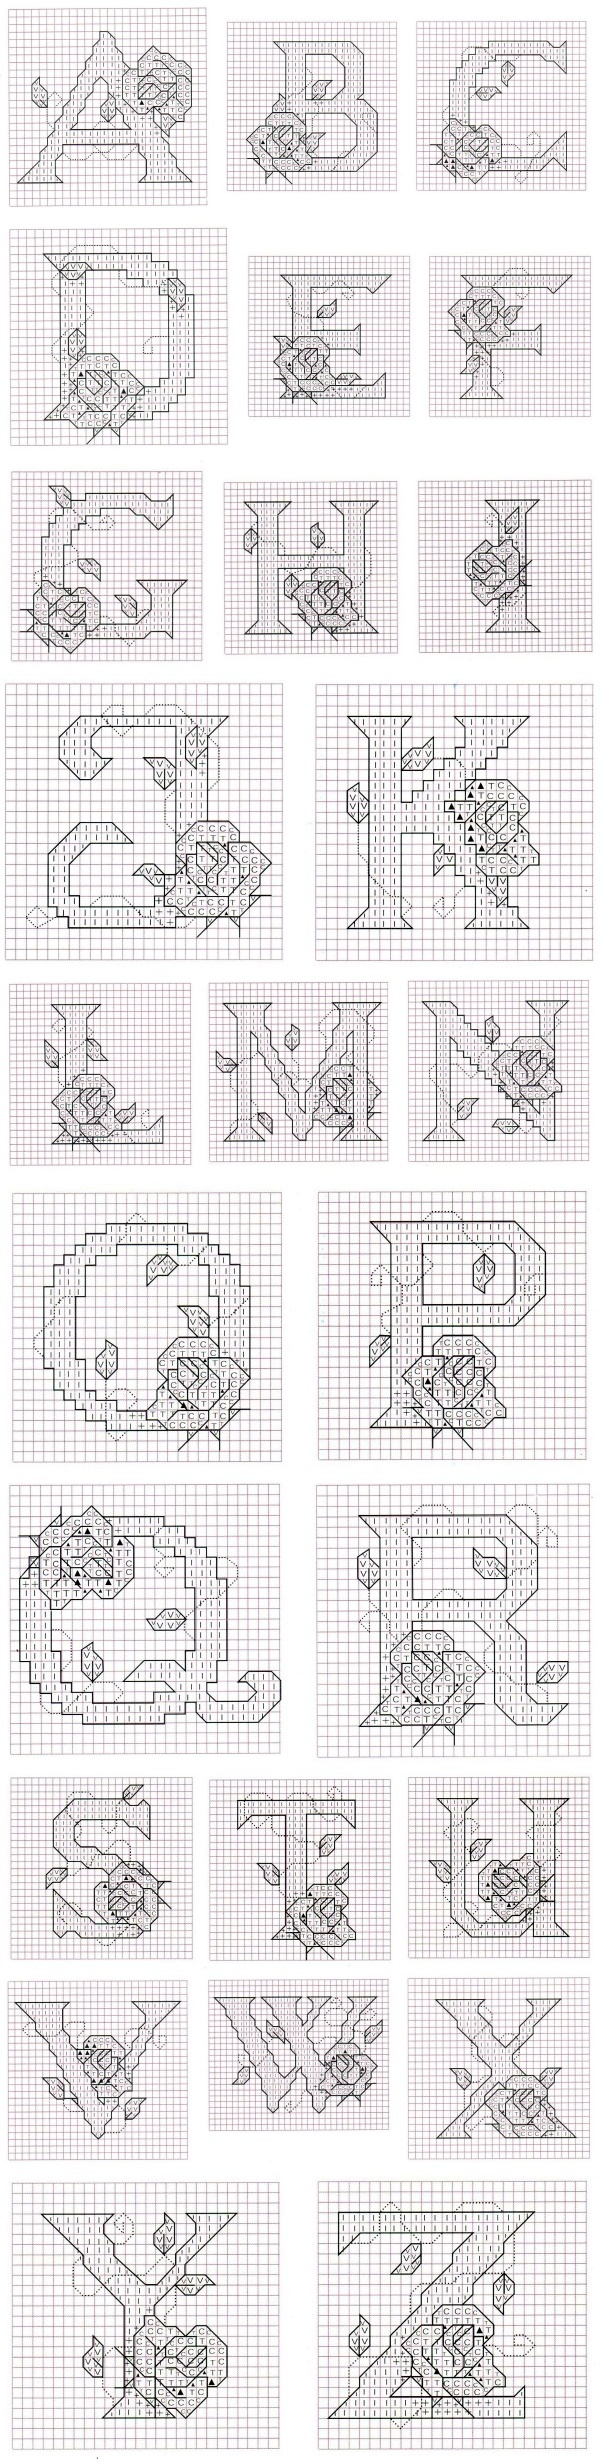 ABC Cross Stitch Alphabet Patterns and Color Chat